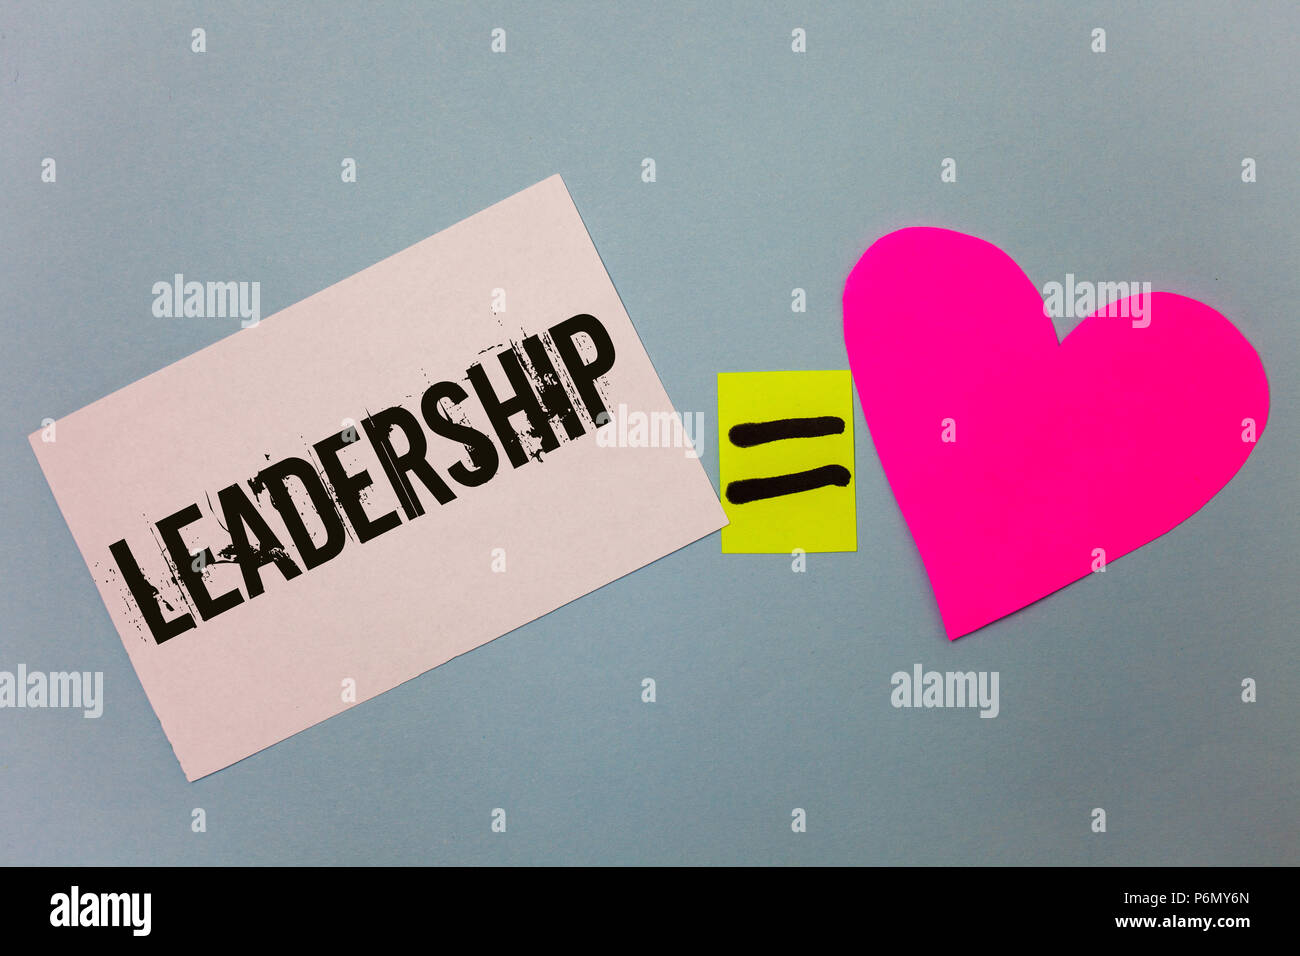 Handwriting Text Writing Leadership Concept Meaning Ability